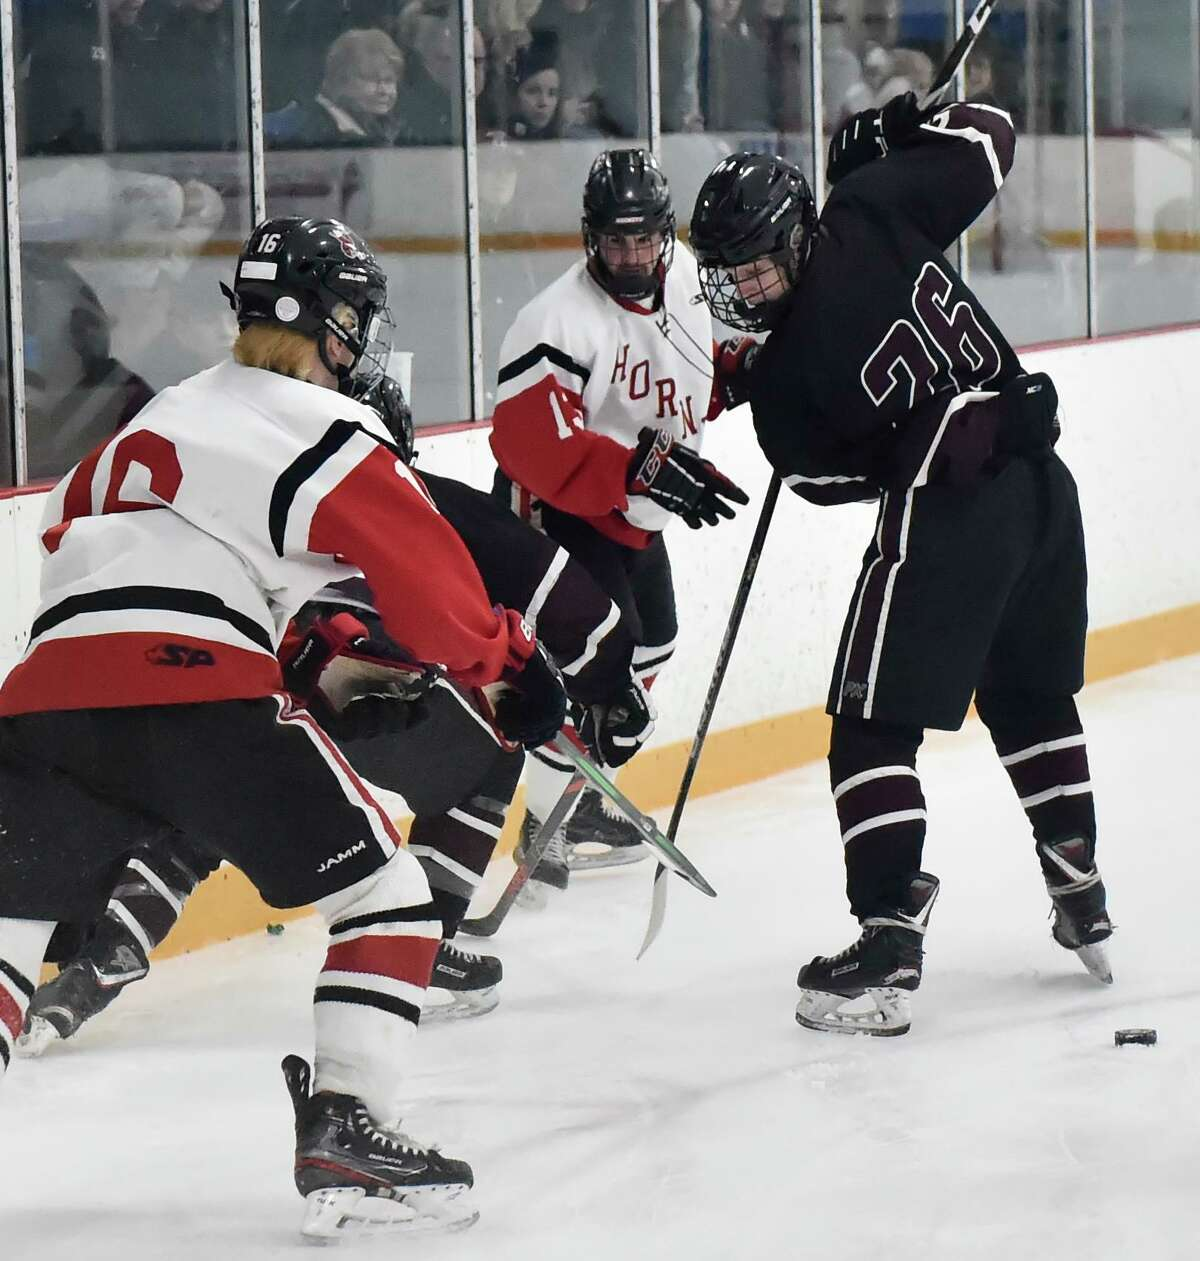 West Haven, Connecticut - Saturday, March 07, 2020: Branford H.S. vs. North Haven H.S. during the SCC/SWC 2020 Boys Ice Hockey Division II Championship Saturday at Bennett Rink in West Haven